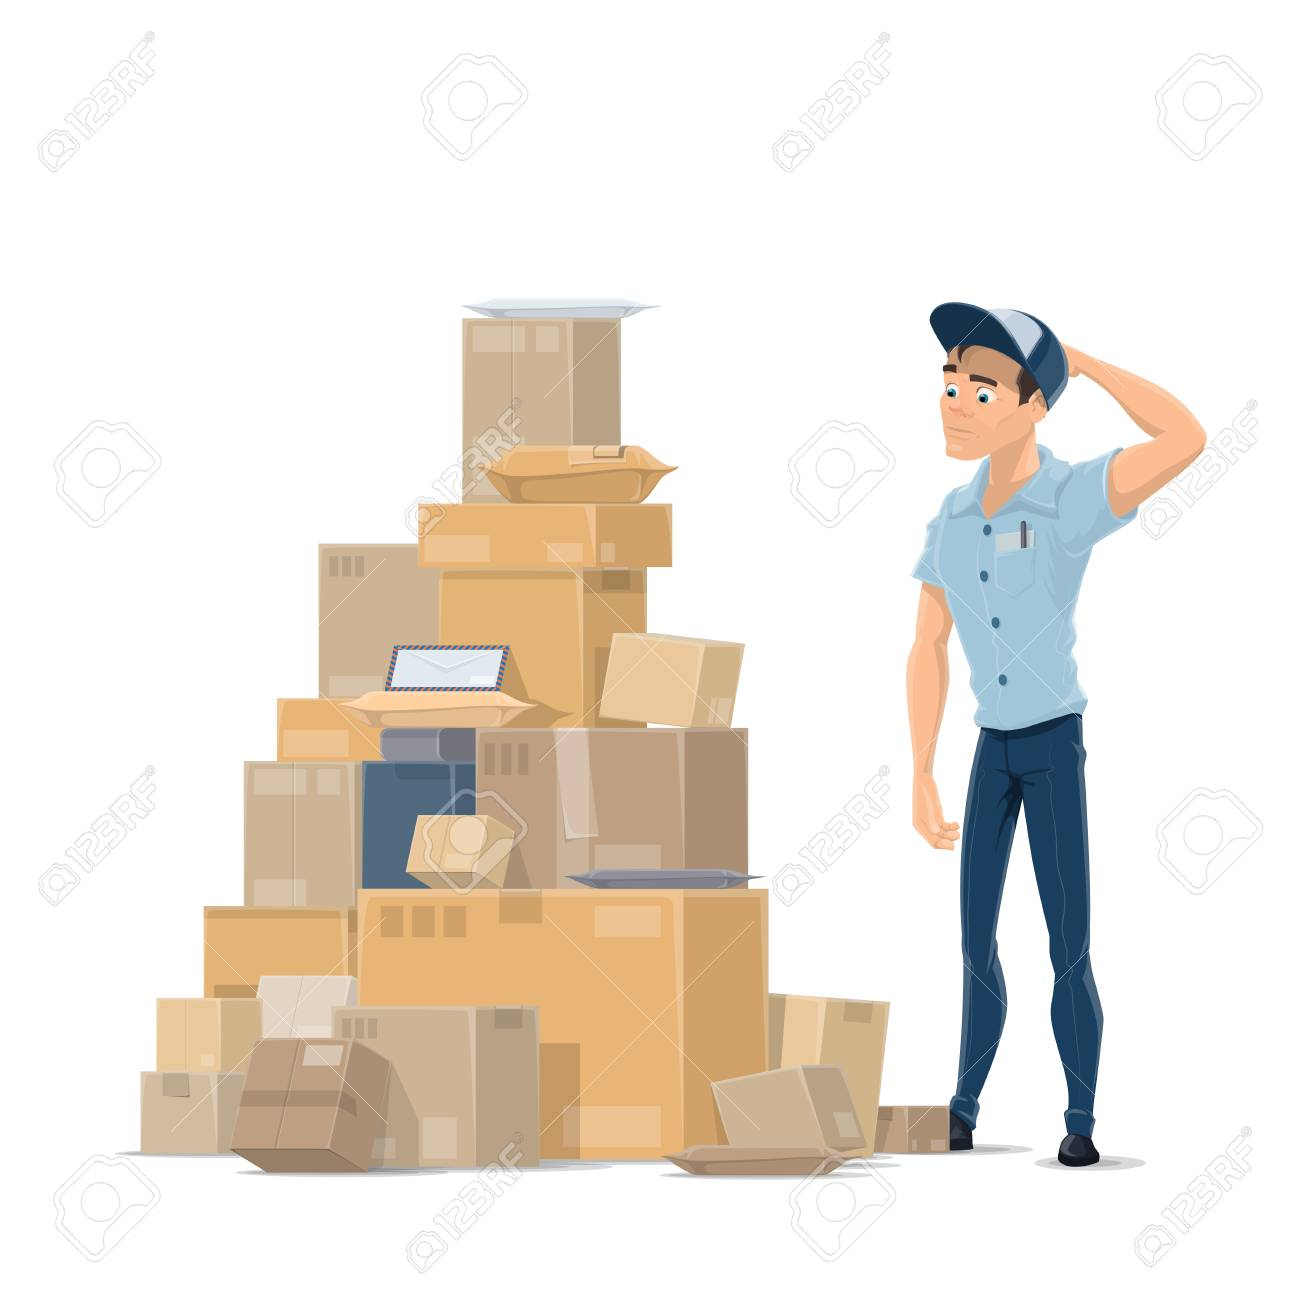 Mail parcels and postman vector flat icon - 97640729